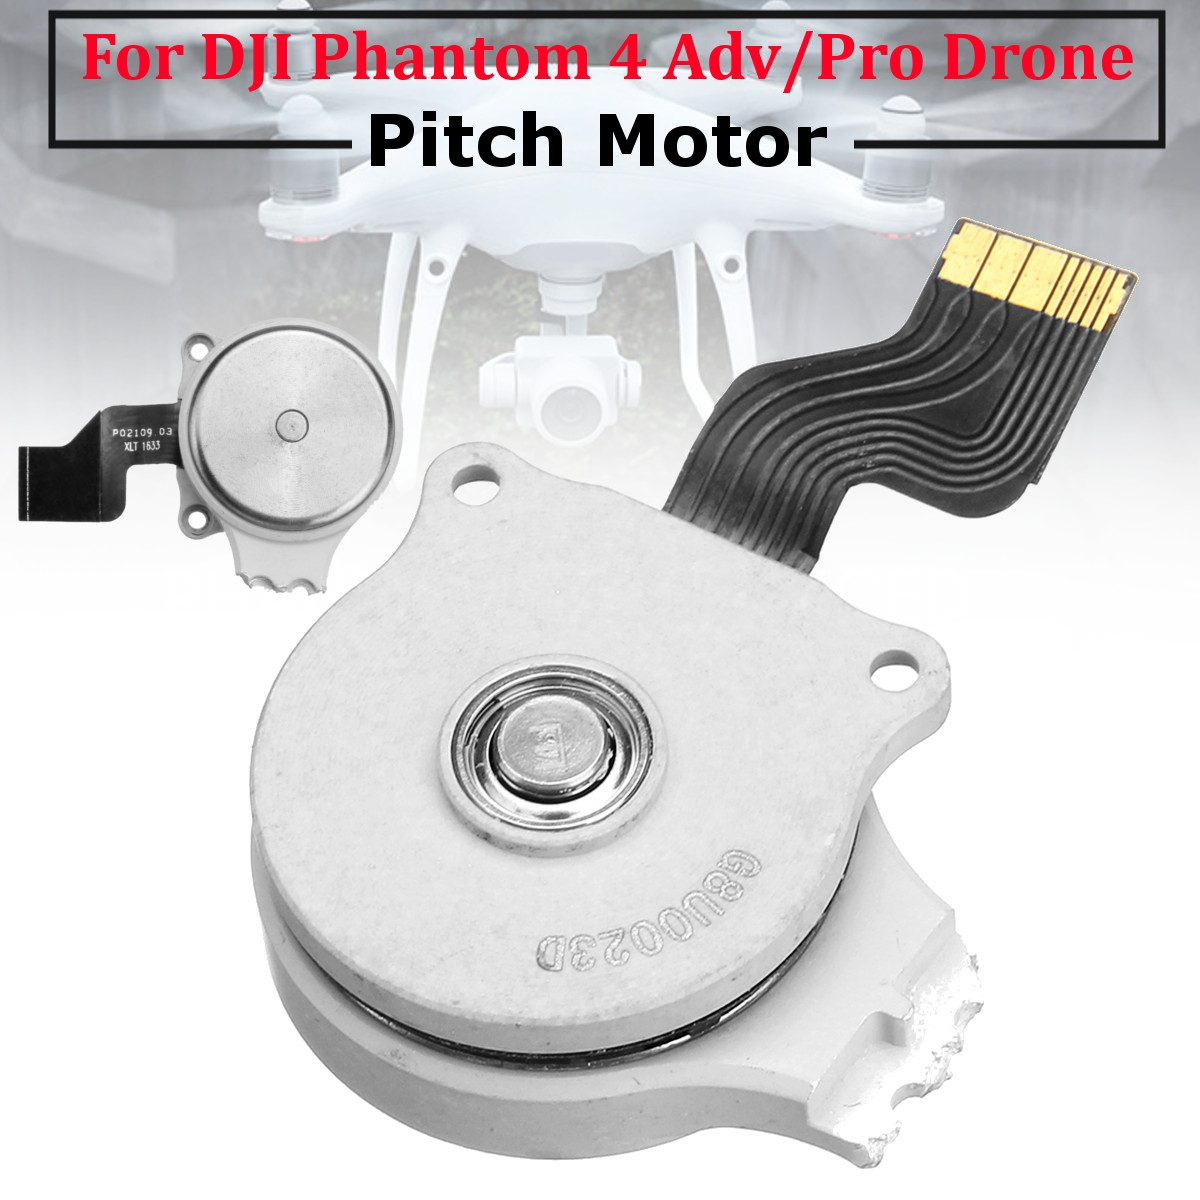 Gimbal Pitch Motor RC Quadcopter Parts For DJI Phantom 4 Adv/Pro